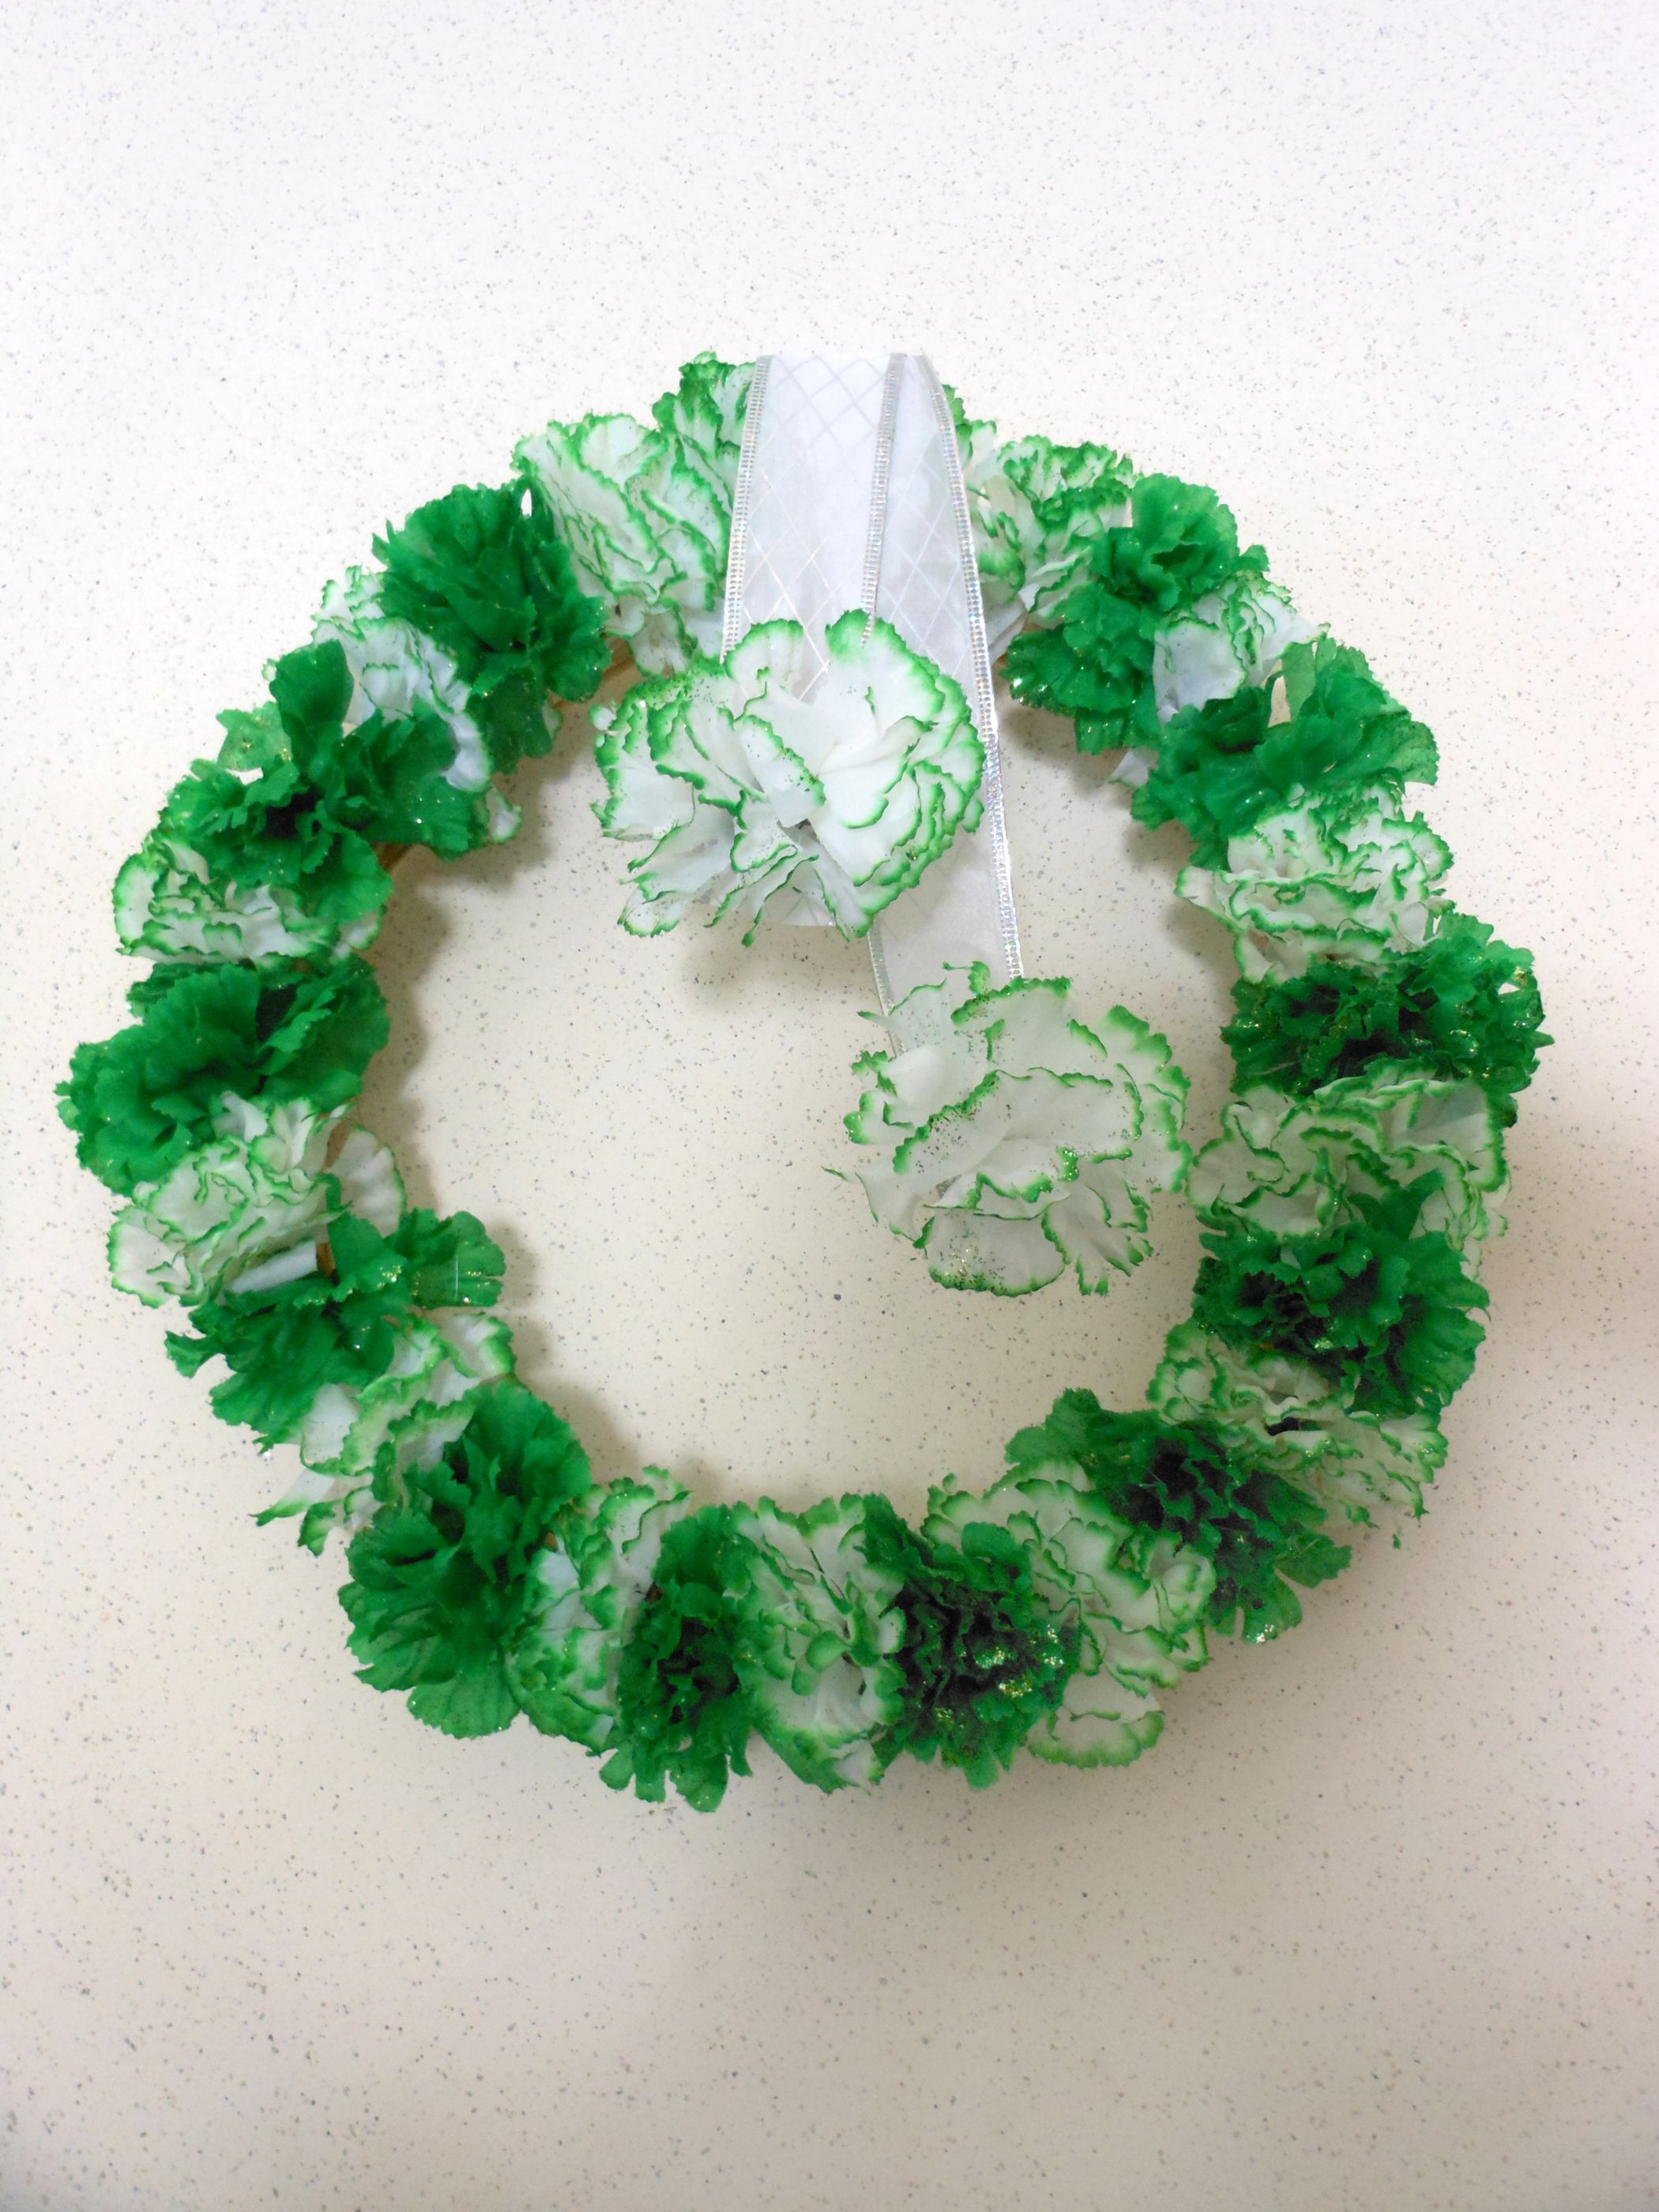 My Diy St PattyS Day Wreath Dollar Tree Fabric Glitter Flowers